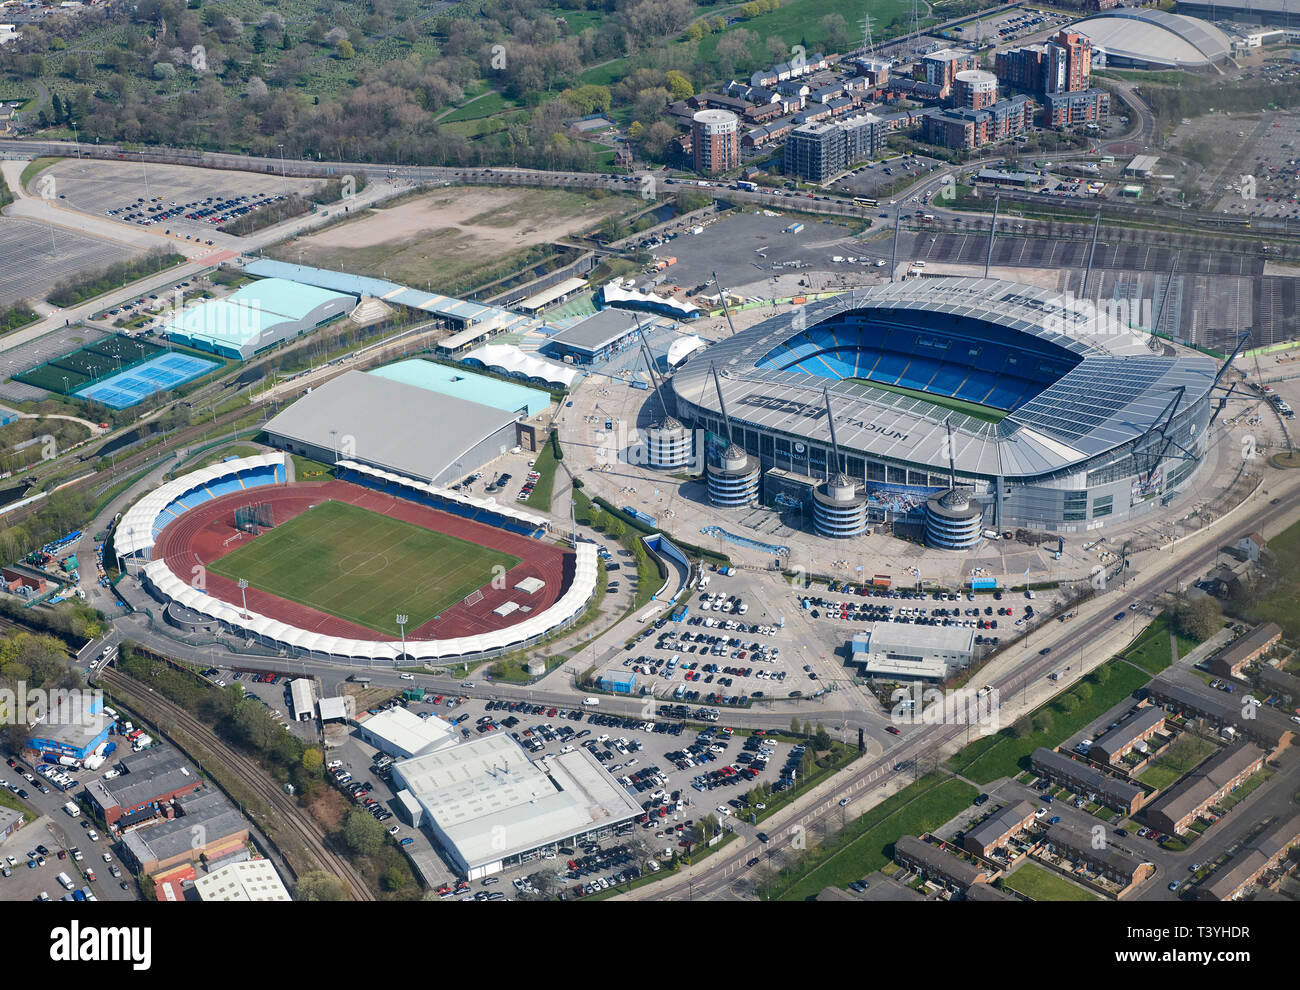 An aerial view of Manchester City Etihad Stadium complex, North West England, UK - Stock Image